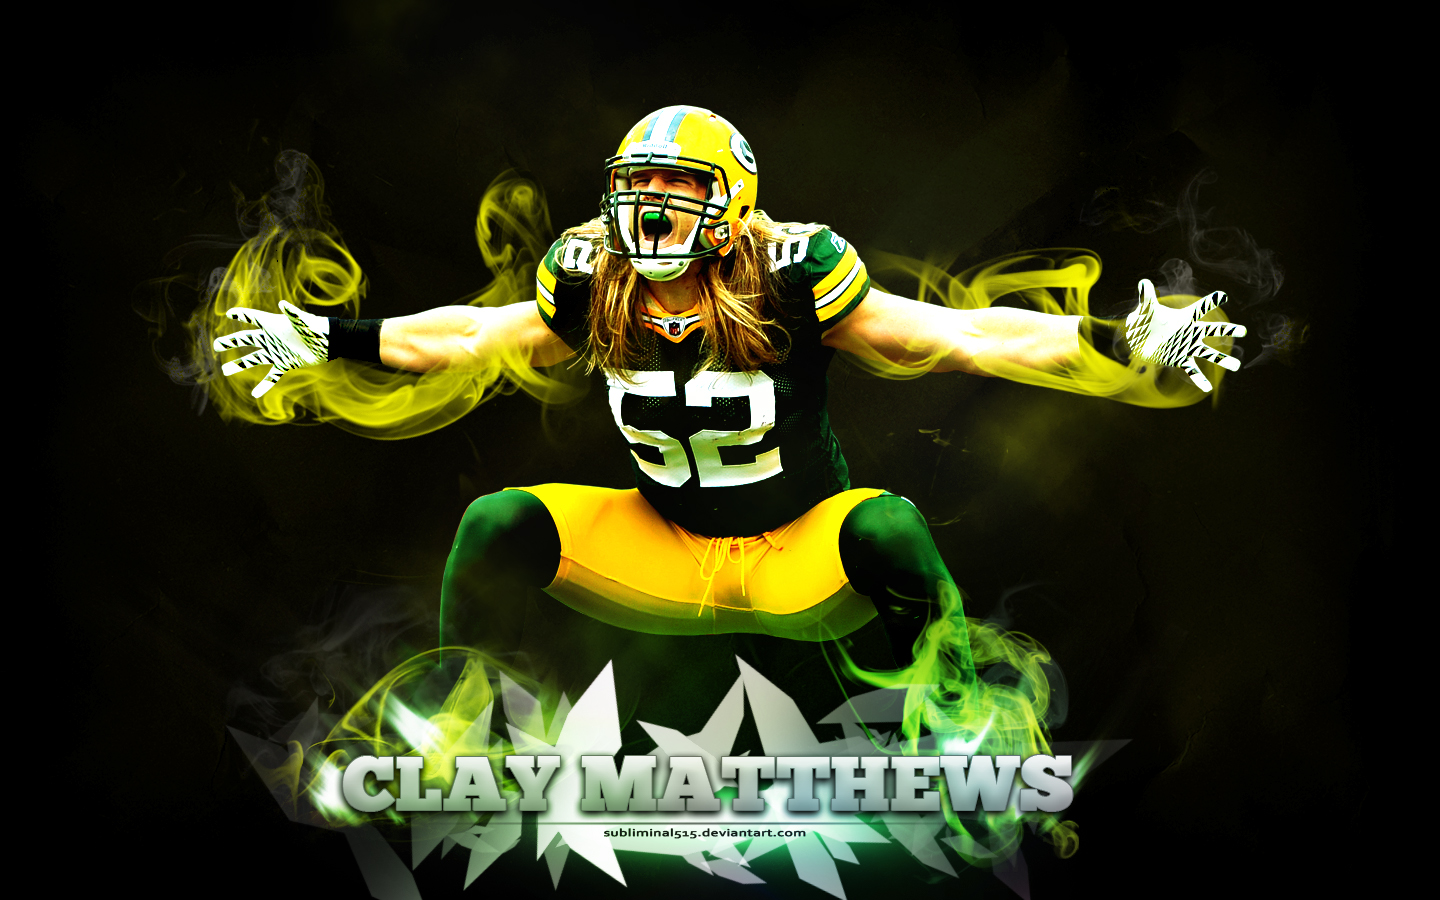 Packer-Background-For-Computer-forum-source-for-windows-pc-computer-desktop-football-desktop-file-wallpaper-wp480525